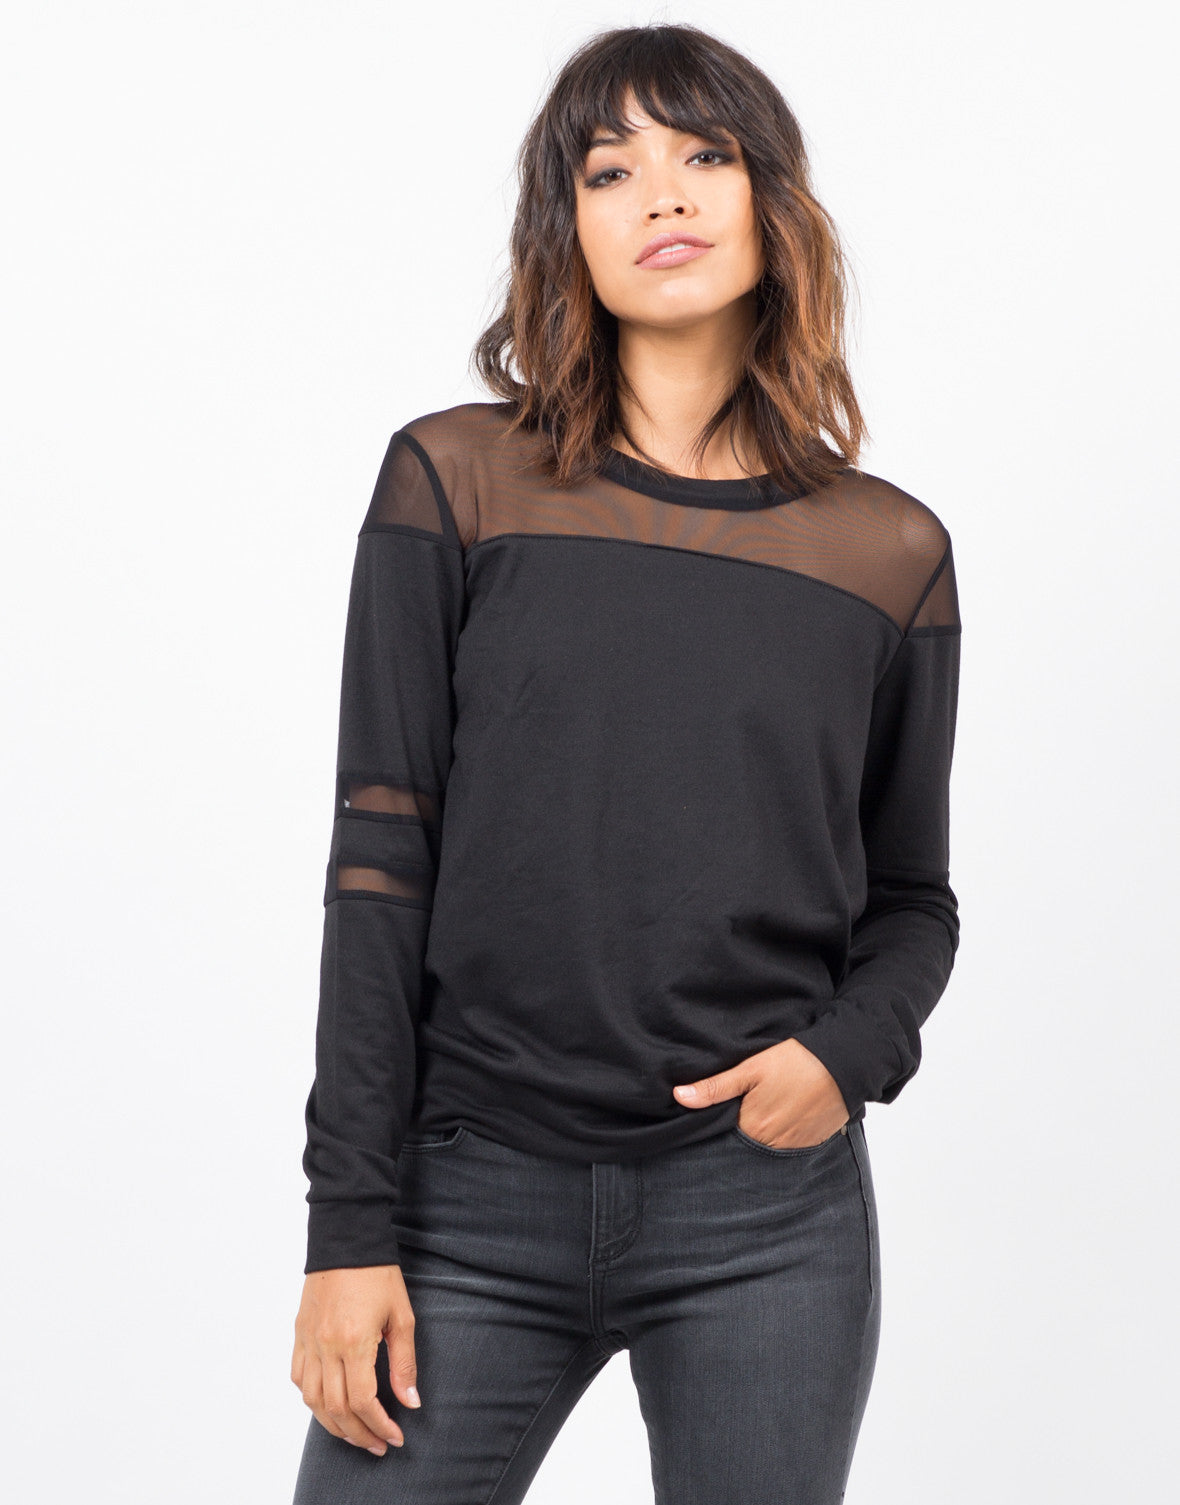 Front View of Mesh Sweater Top